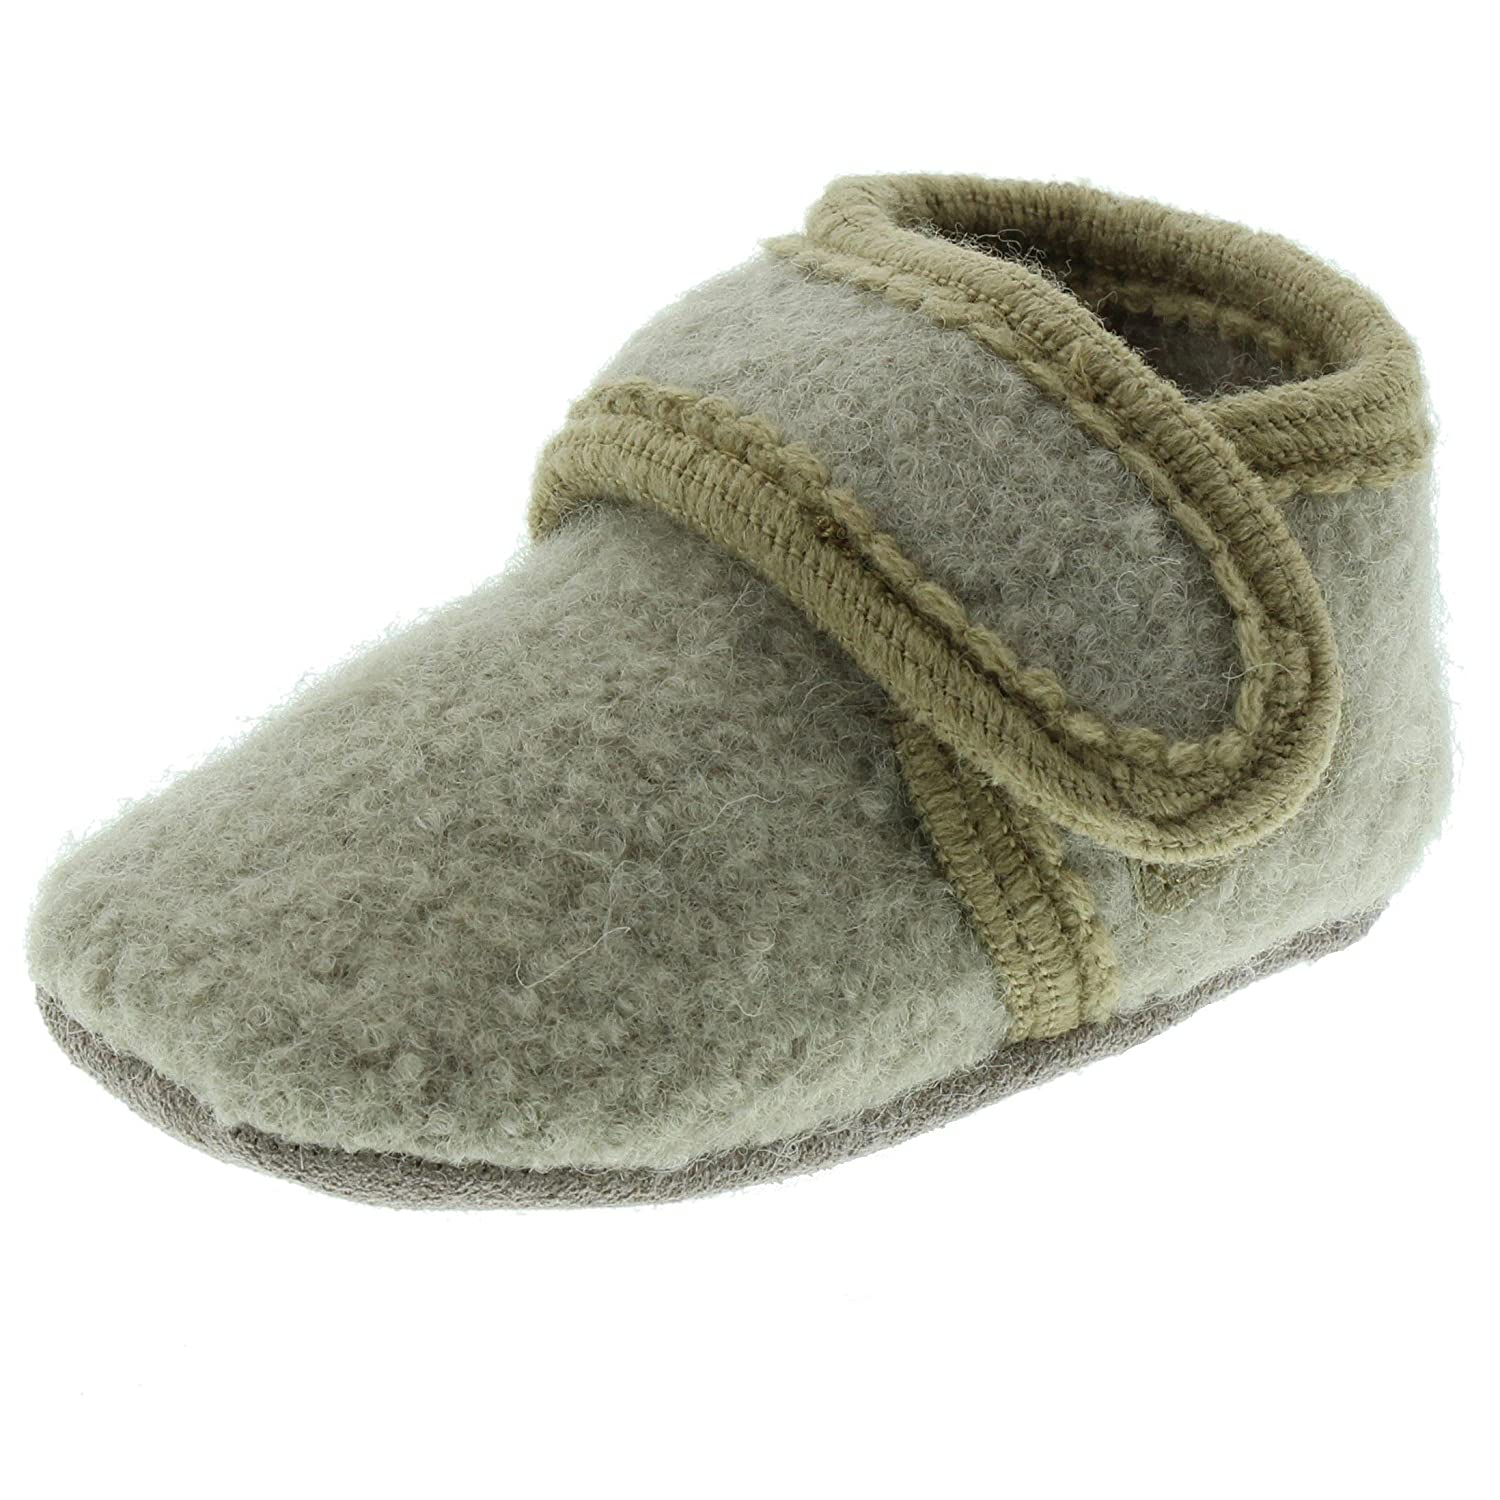 CeLaVi Wool Baby Girls Boys Shoes Baby Toddler Soft Sole Prewalker First Walker Crib Shoes